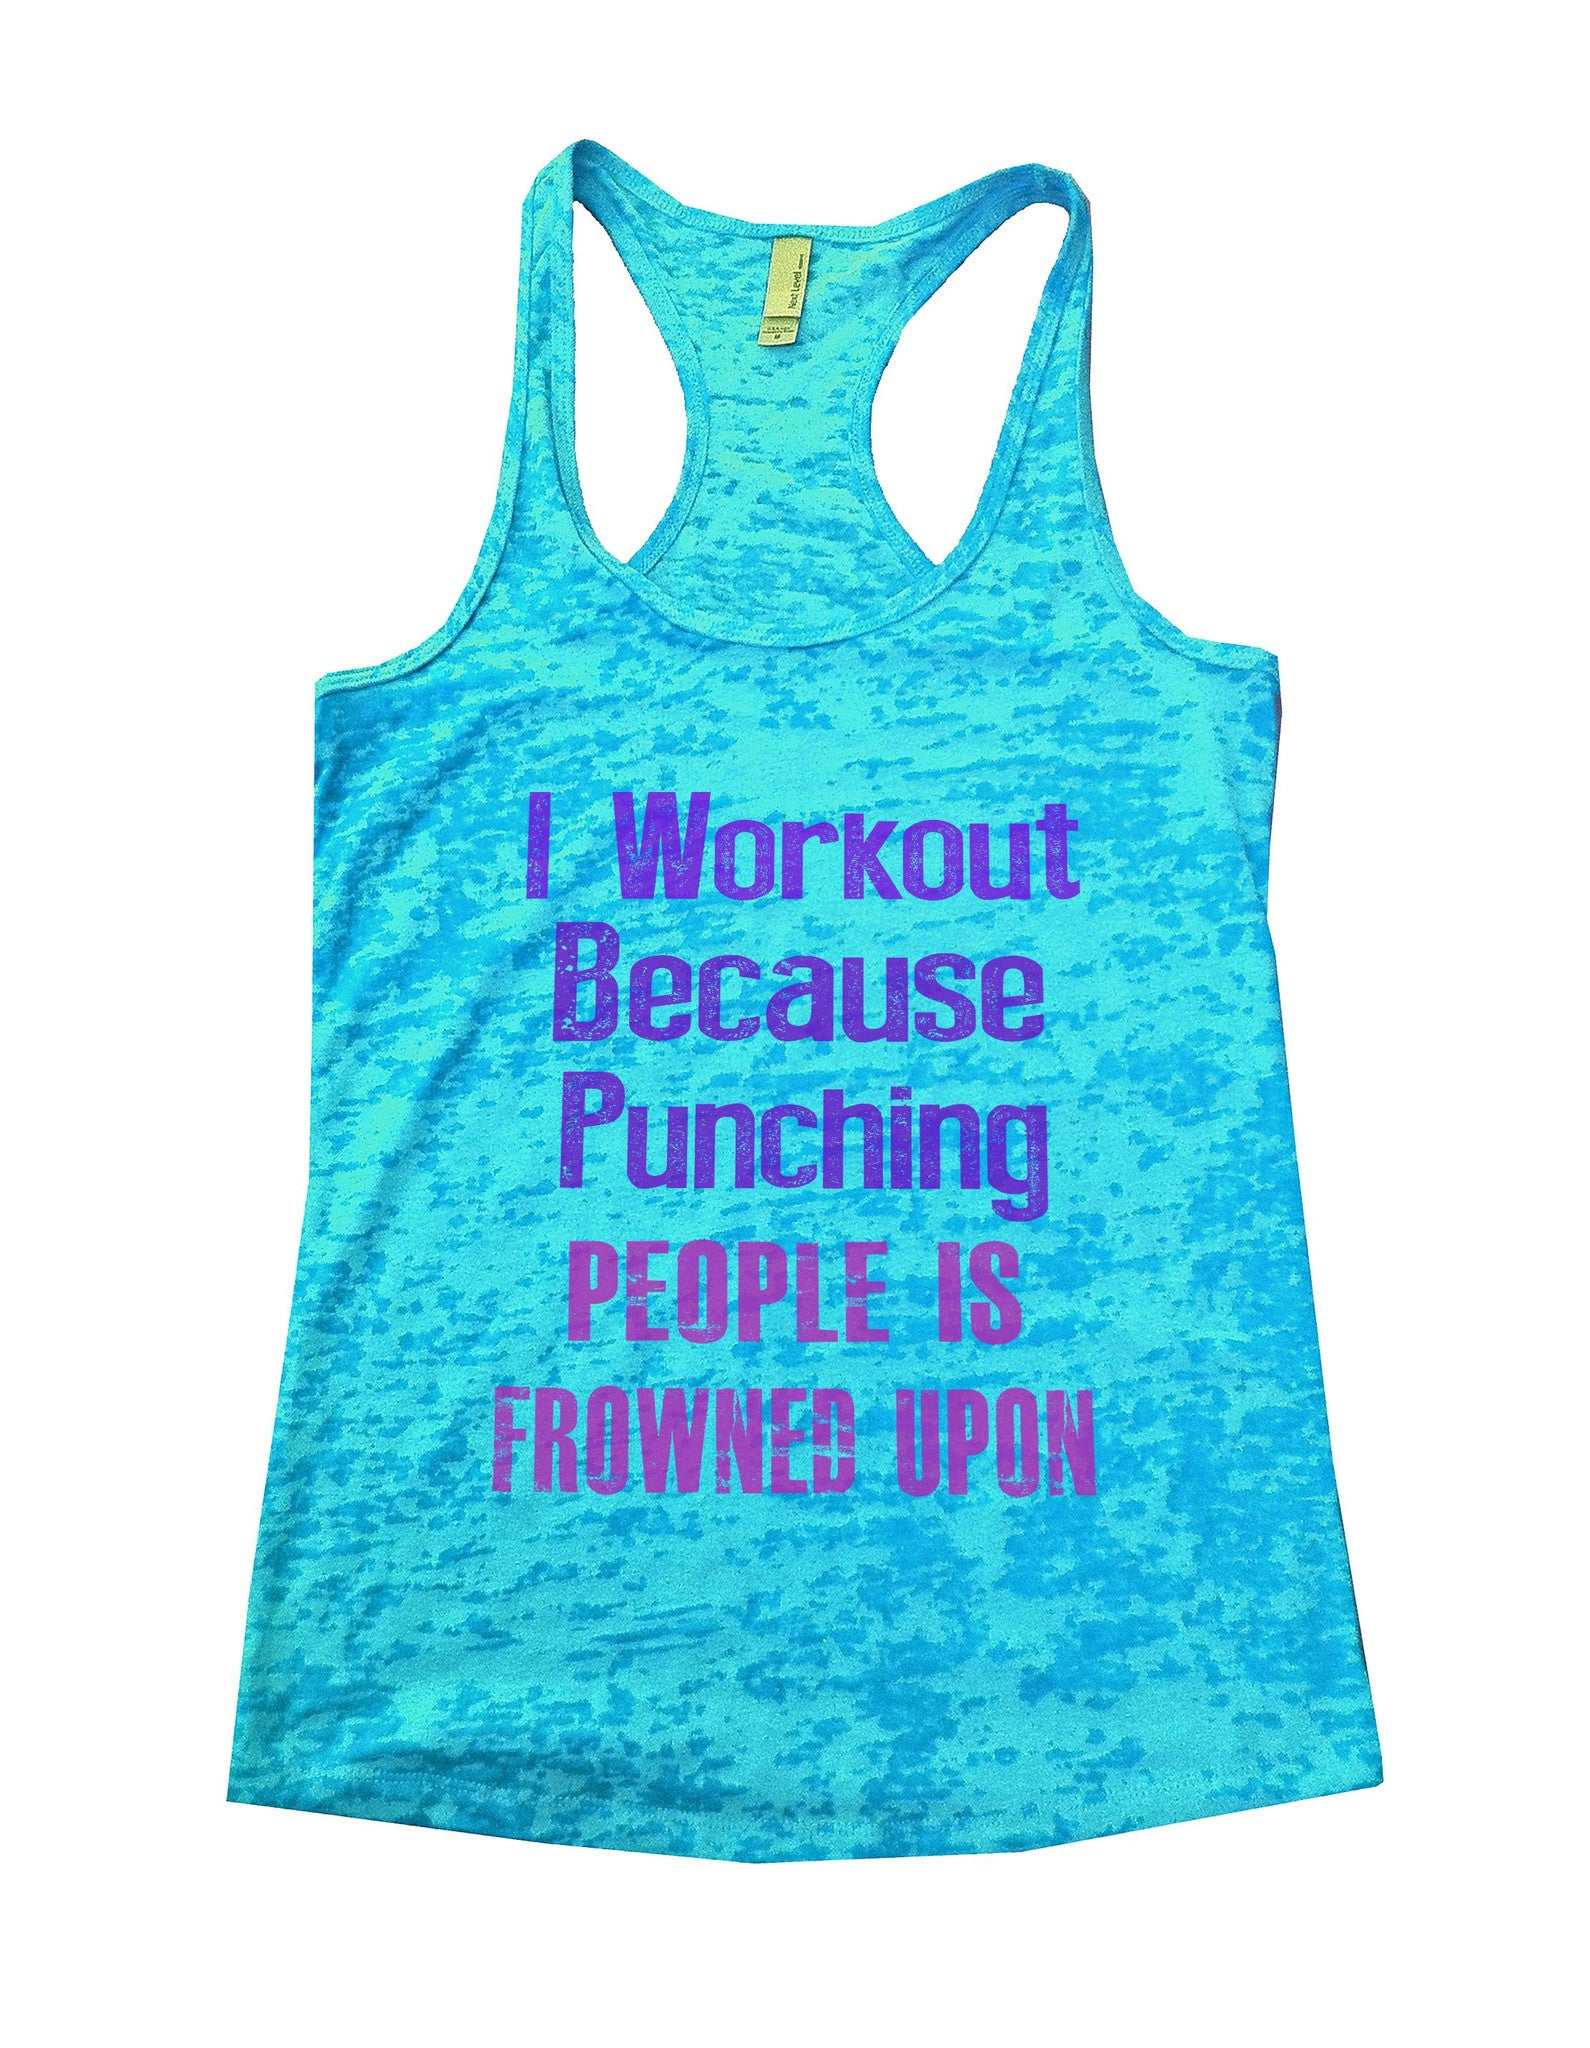 I Workout Because Punching People Is Frowned Upon Burnout Tank Top By BurnoutTankTops.com - 681 - Funny Shirts Tank Tops Burnouts and Triblends  - 1